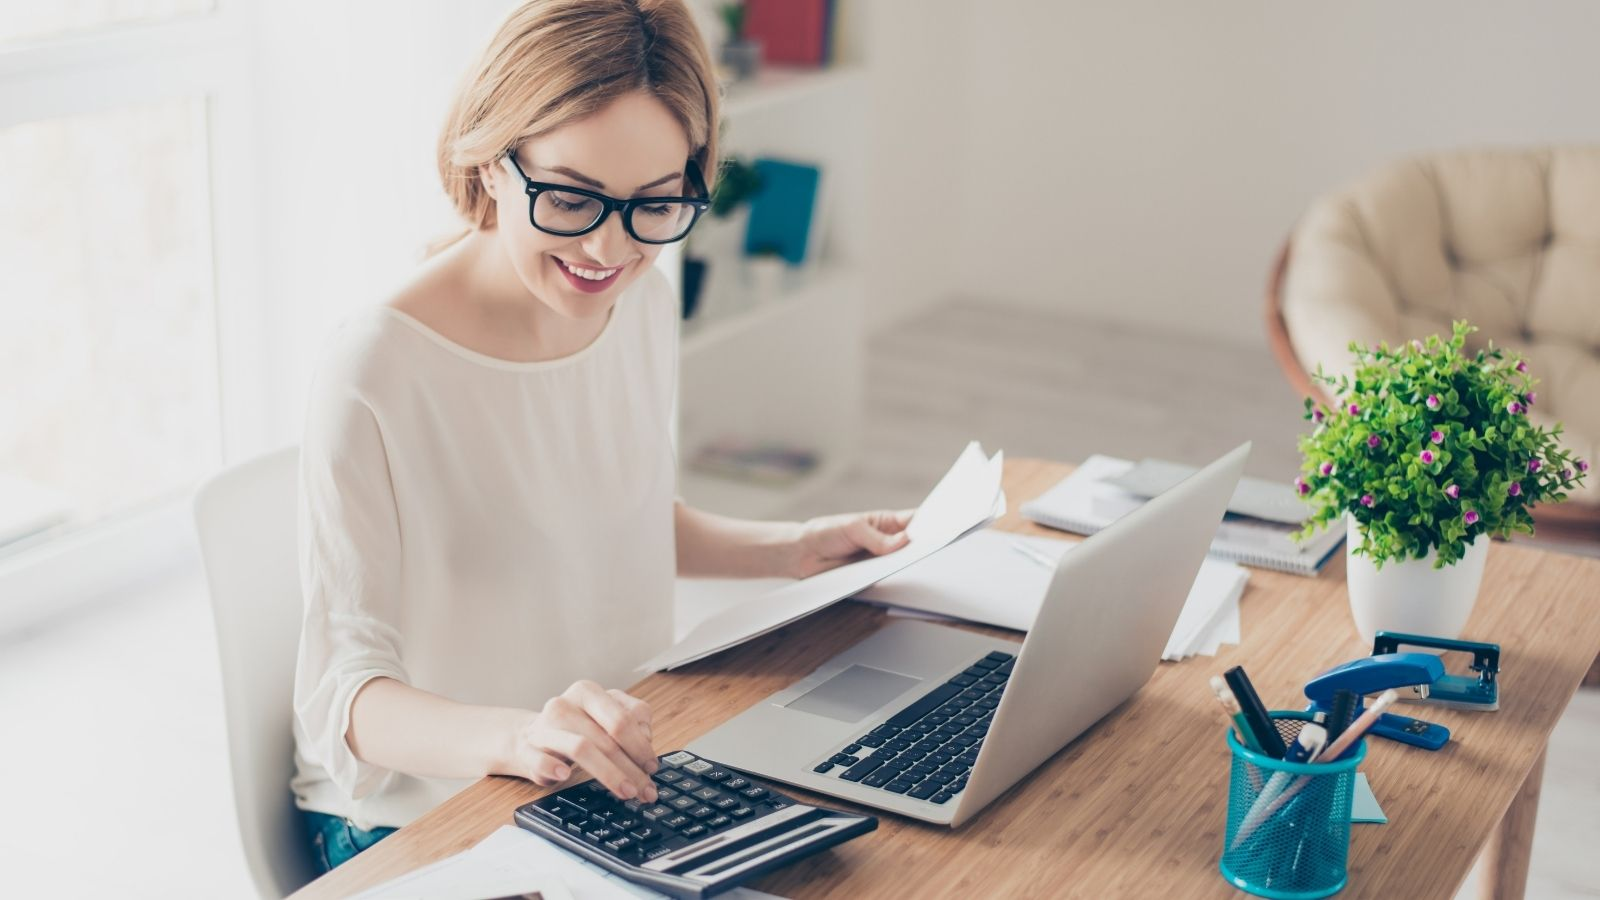 10 things to look for when choosing an accountant